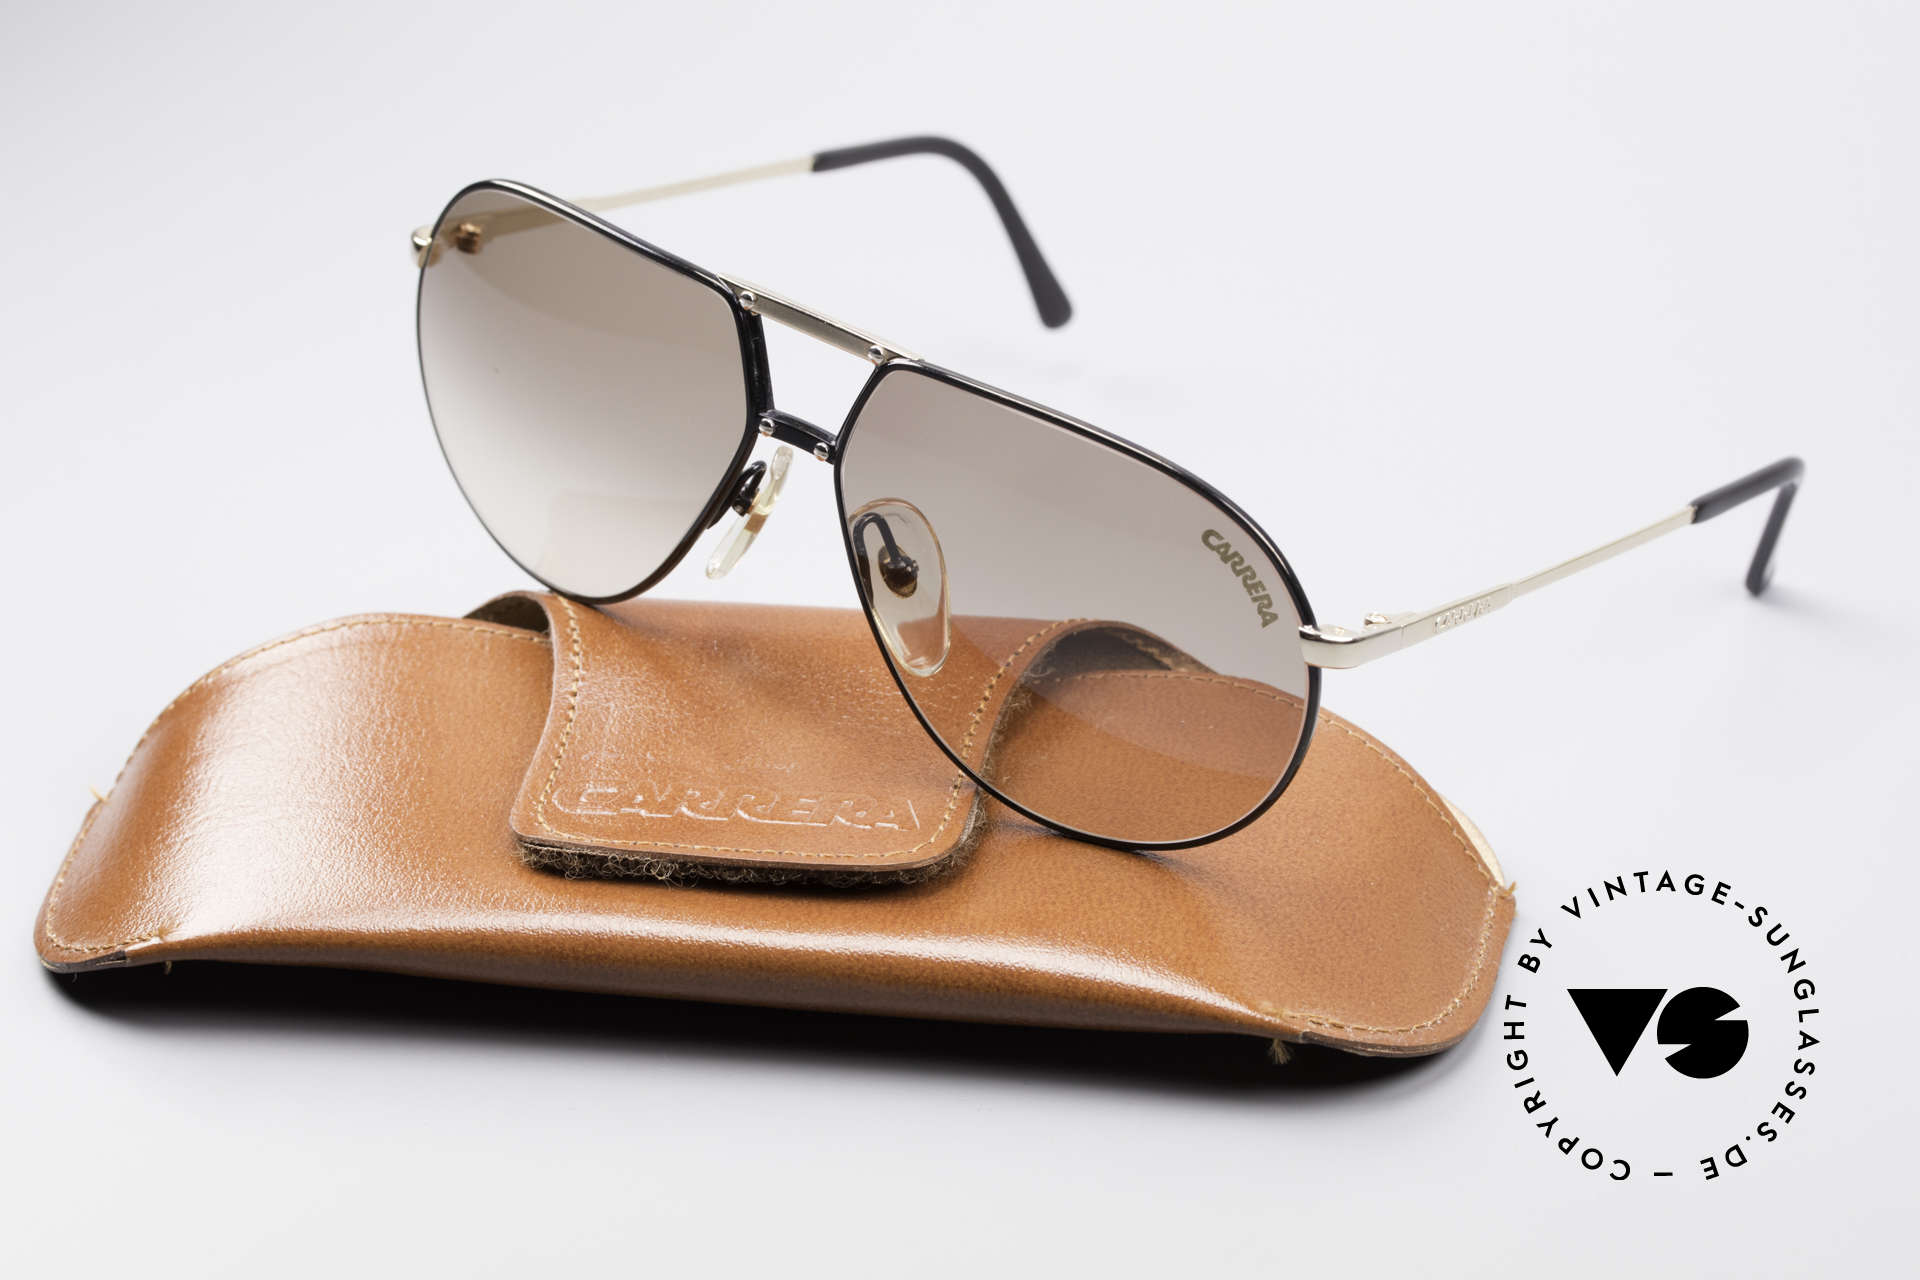 Carrera 5326 - S 80's Men's Sunglasses, NO RETRO SUNGLASSES, but a 30 years old ORIGINAL, Made for Men and Women